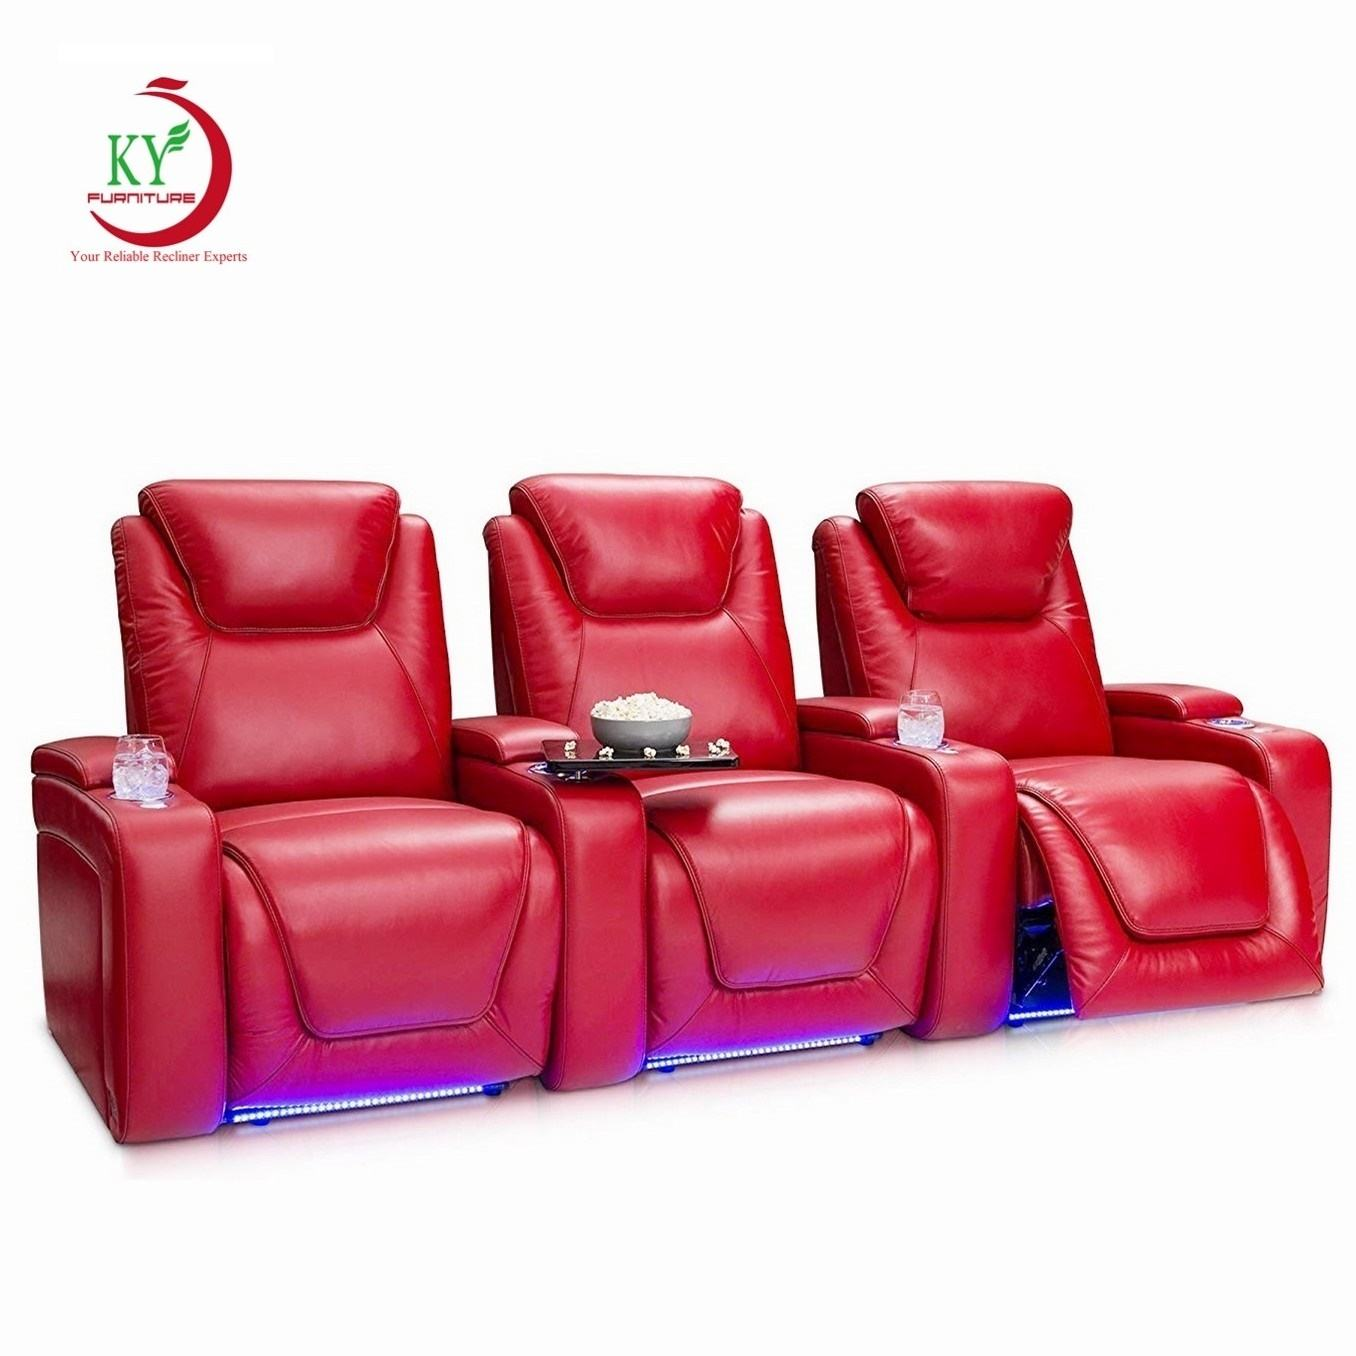 JKY Furniture Movie Power Electric TV Cinema Theater Seating Home Theatre Recliner Chair For Living Room